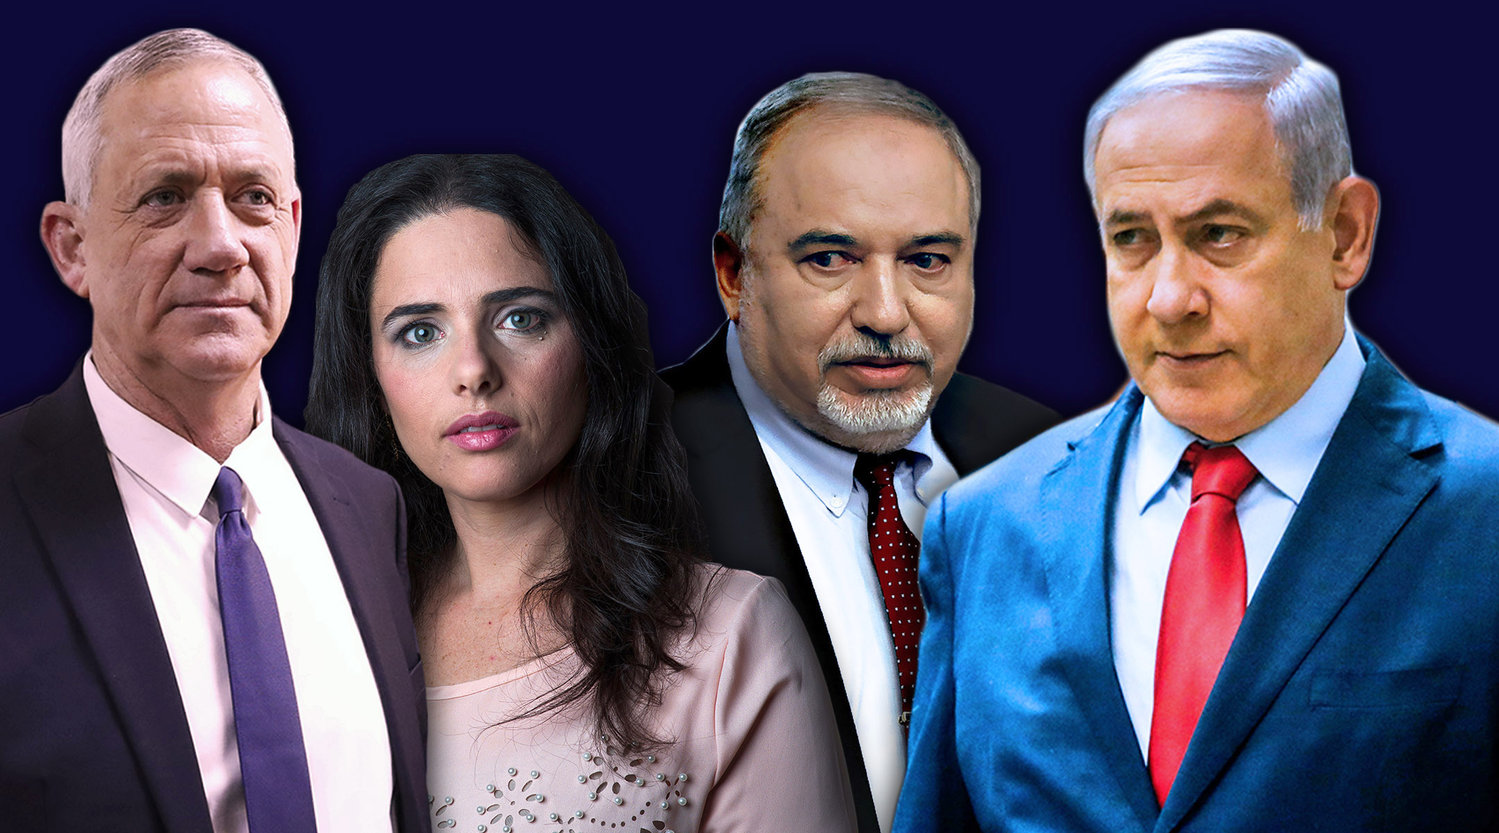 From left: Benny Gantz, Ayelet Shaked, Avigdor Lieberman, Prime Minister Benjamin Netanyahu. Israel will hold its next elections on Sept. 17.